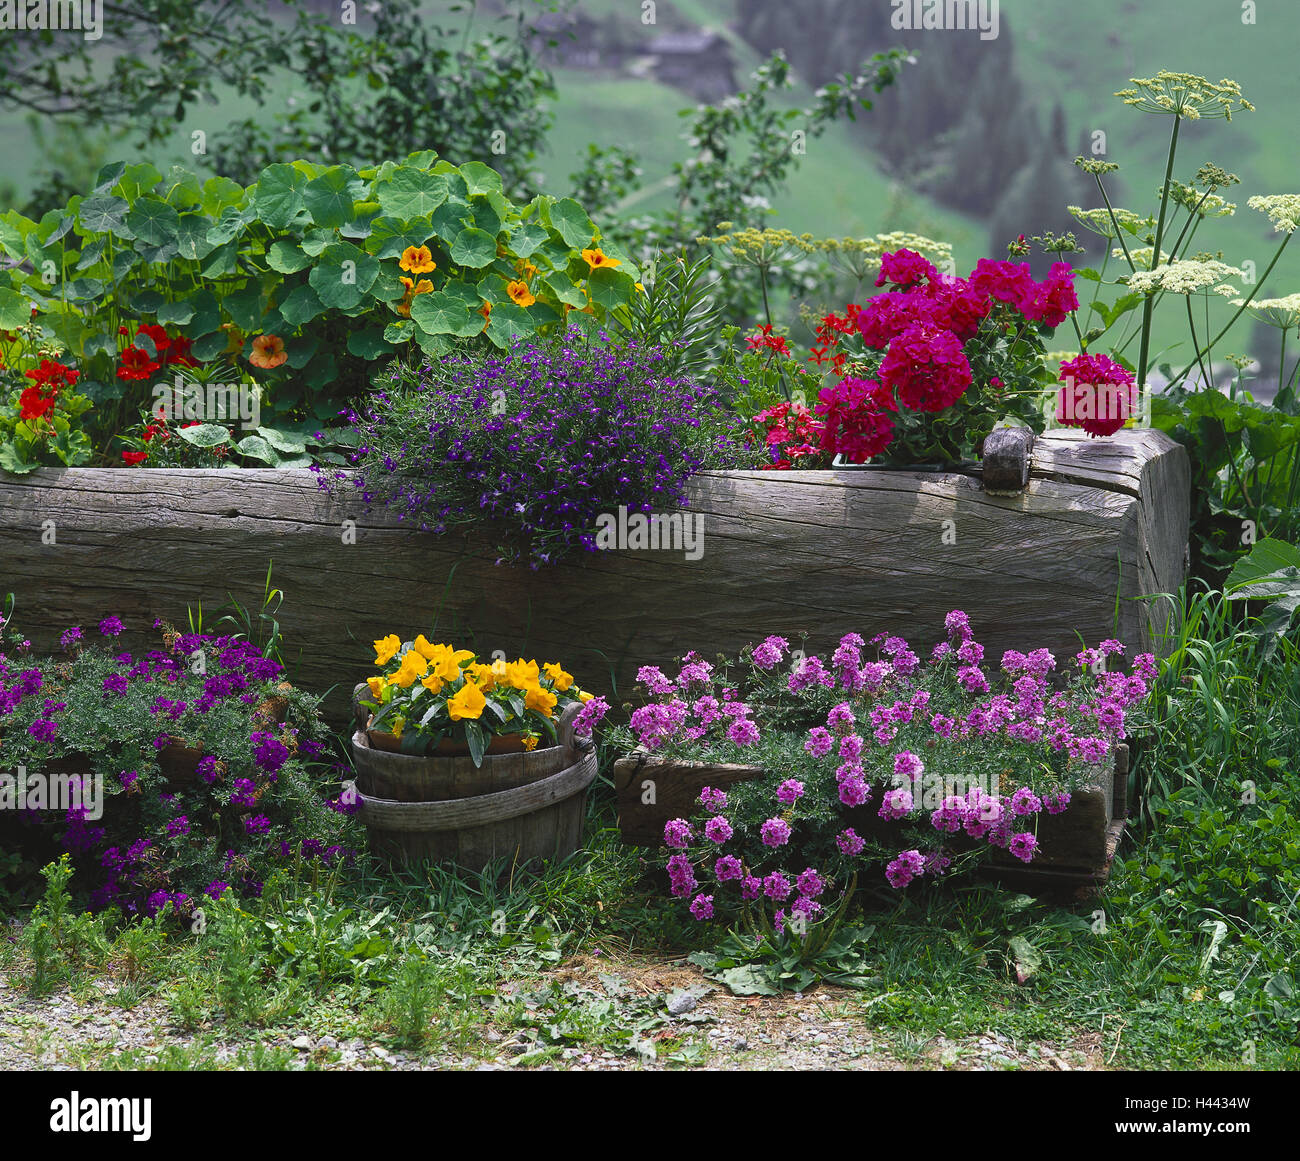 Wooden Trough, Flowers, Blossom, Differently, Nostalgically, Rurally,  Rural, Garden, Cottage Gardens, Flower Trough, Water Trough, Old, Converts,  Plants, ...